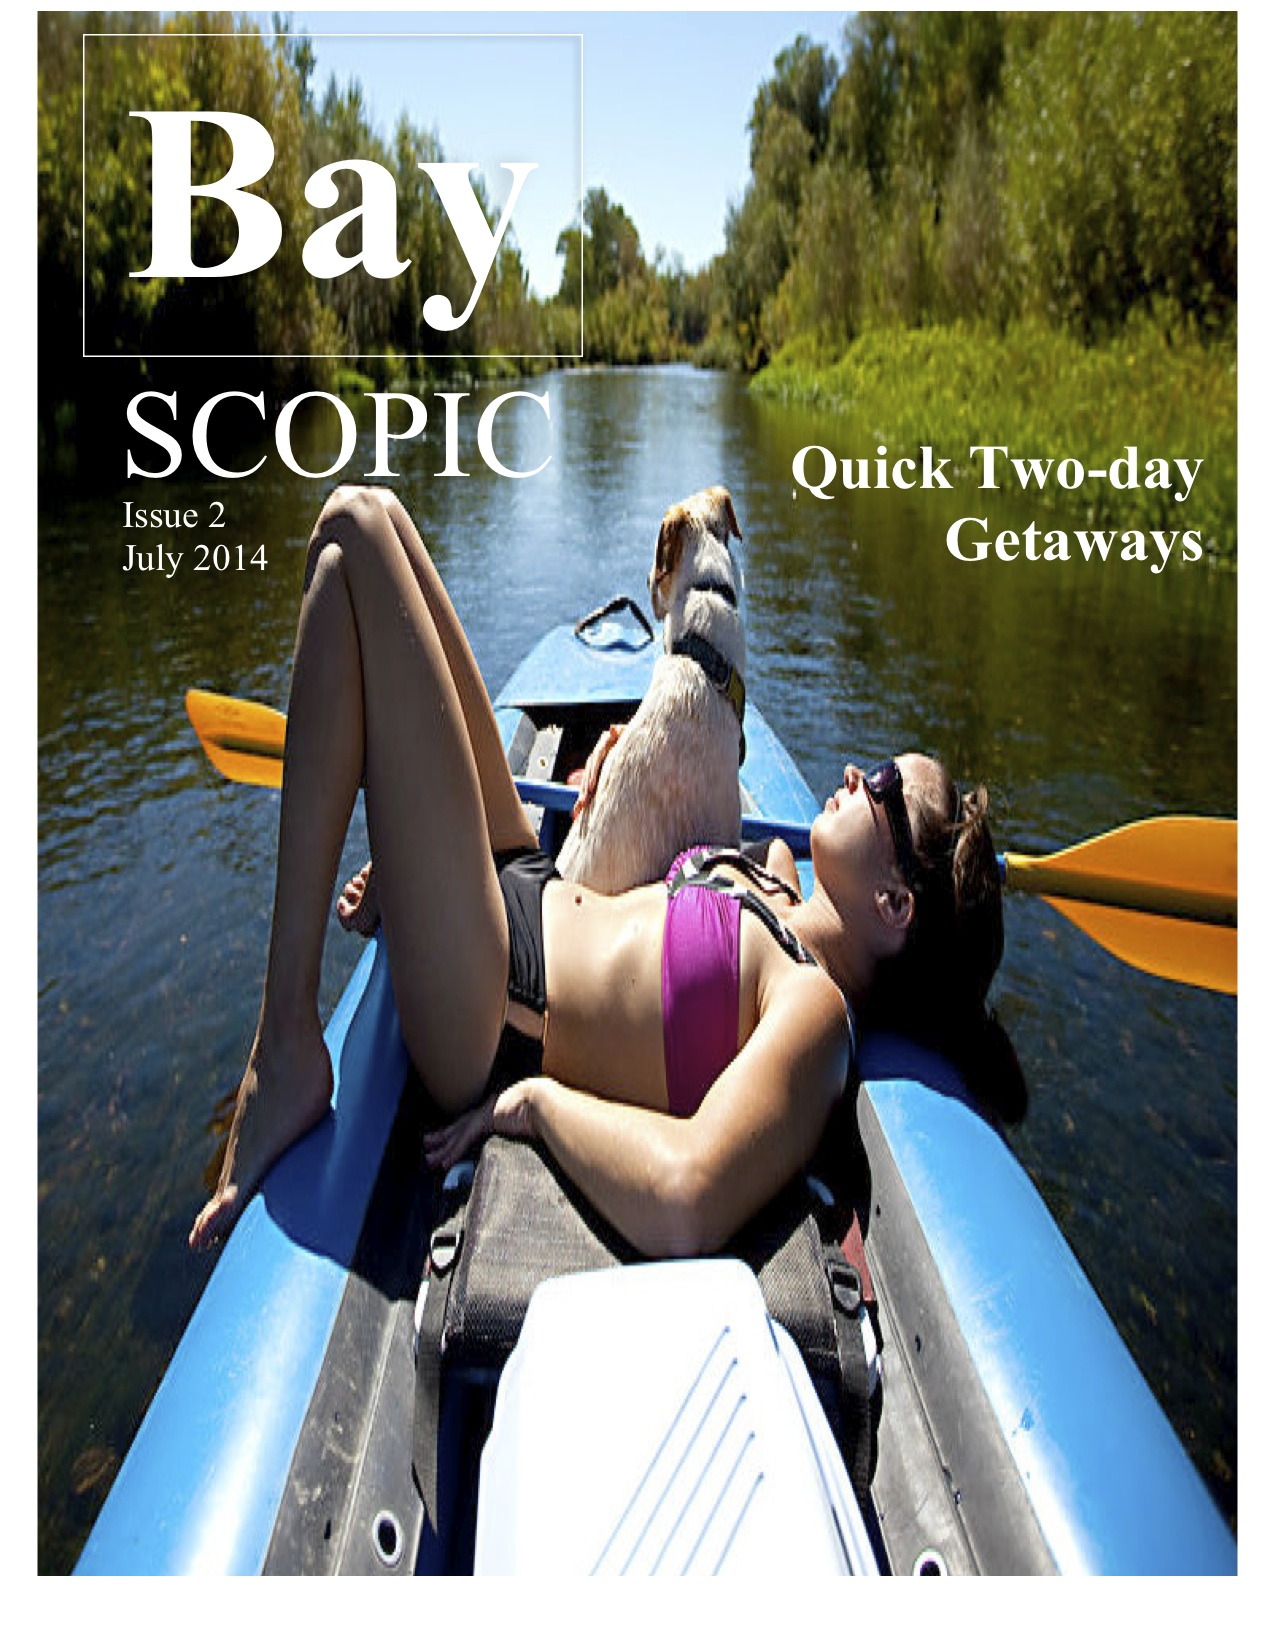 BayScopic would provide a hip guide to happenings around the Bay Area/Design by Anna Hecht